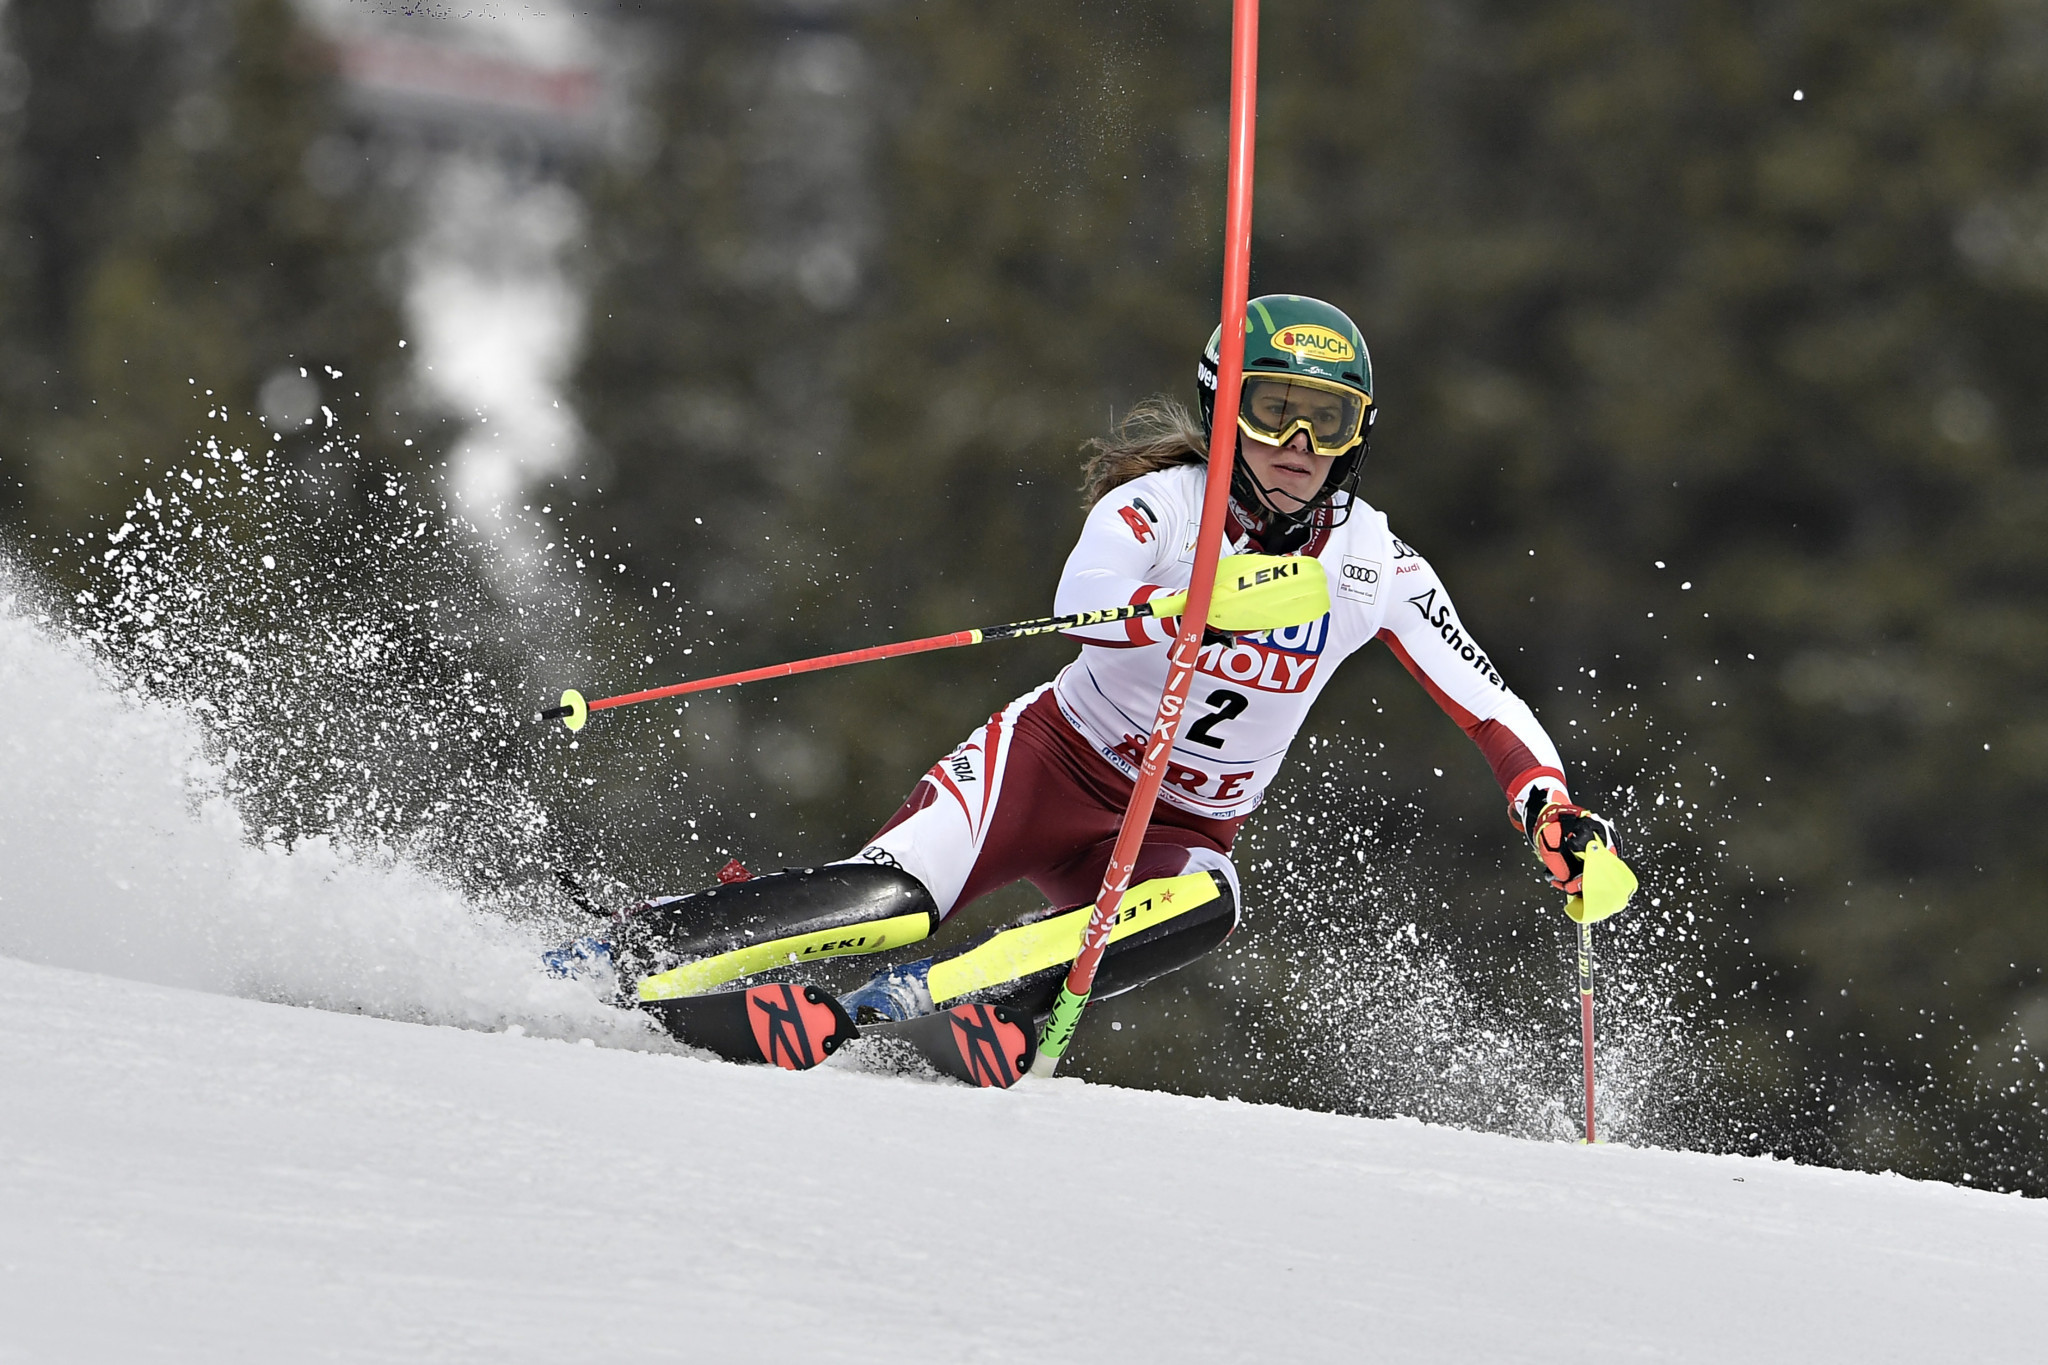 Katharina Liensberger of Austria finished second in today's slalom race ©Getty Images